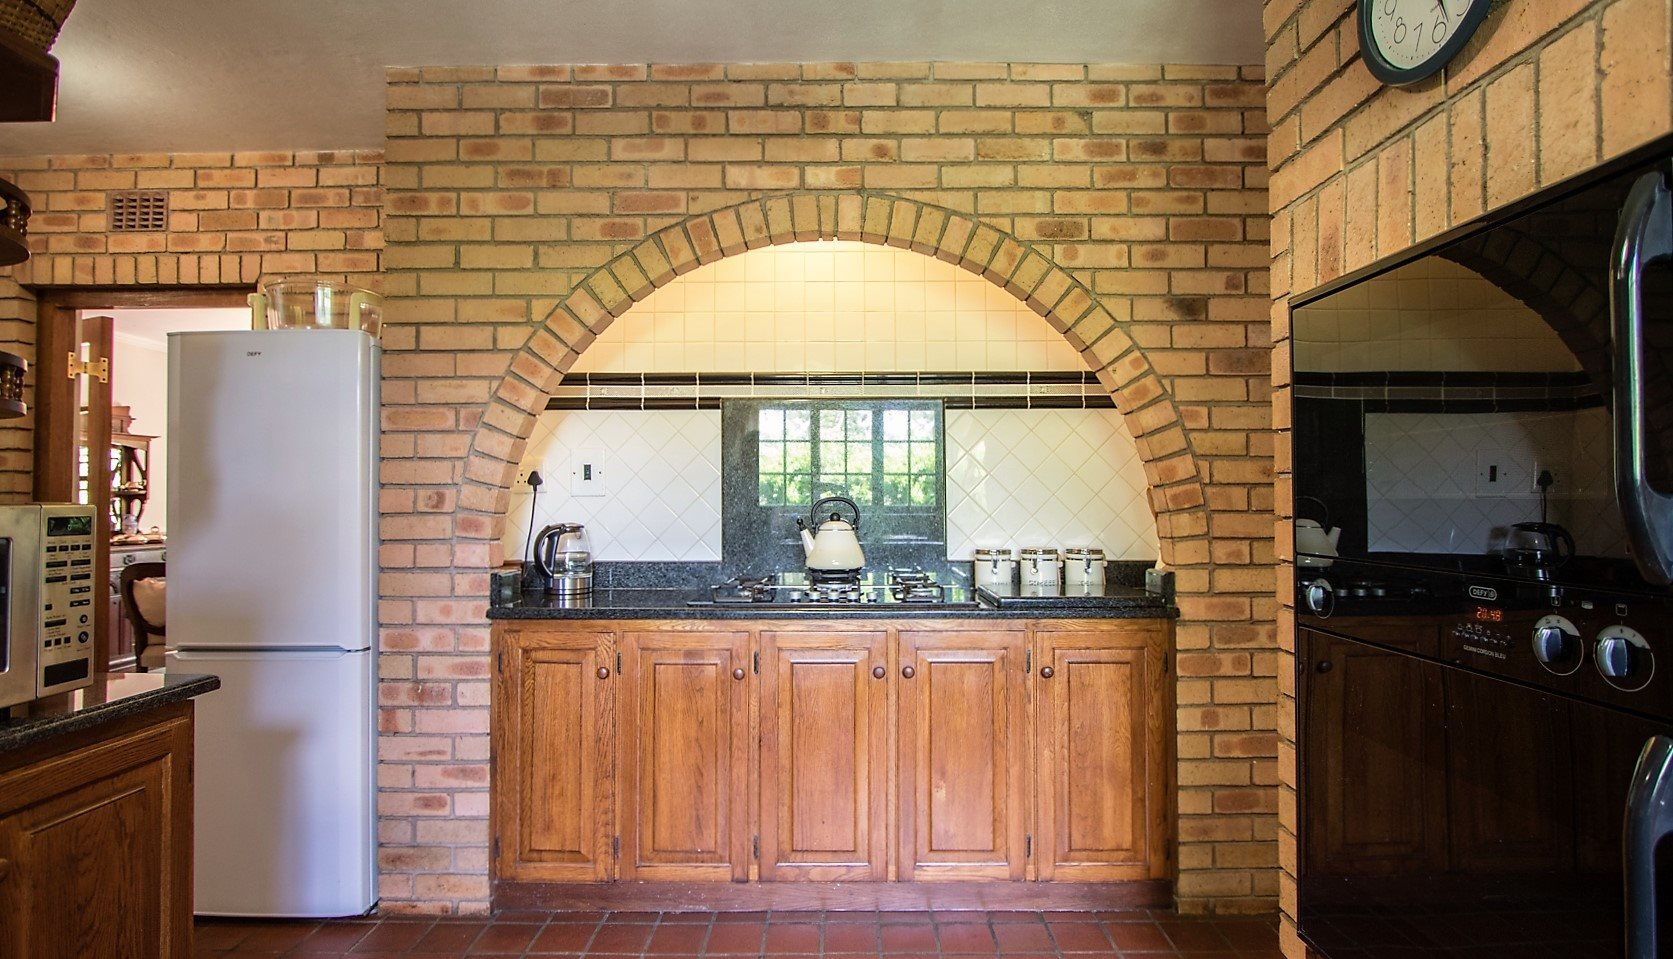 Summerveld property for sale. Ref No: 13247765. Picture no 9